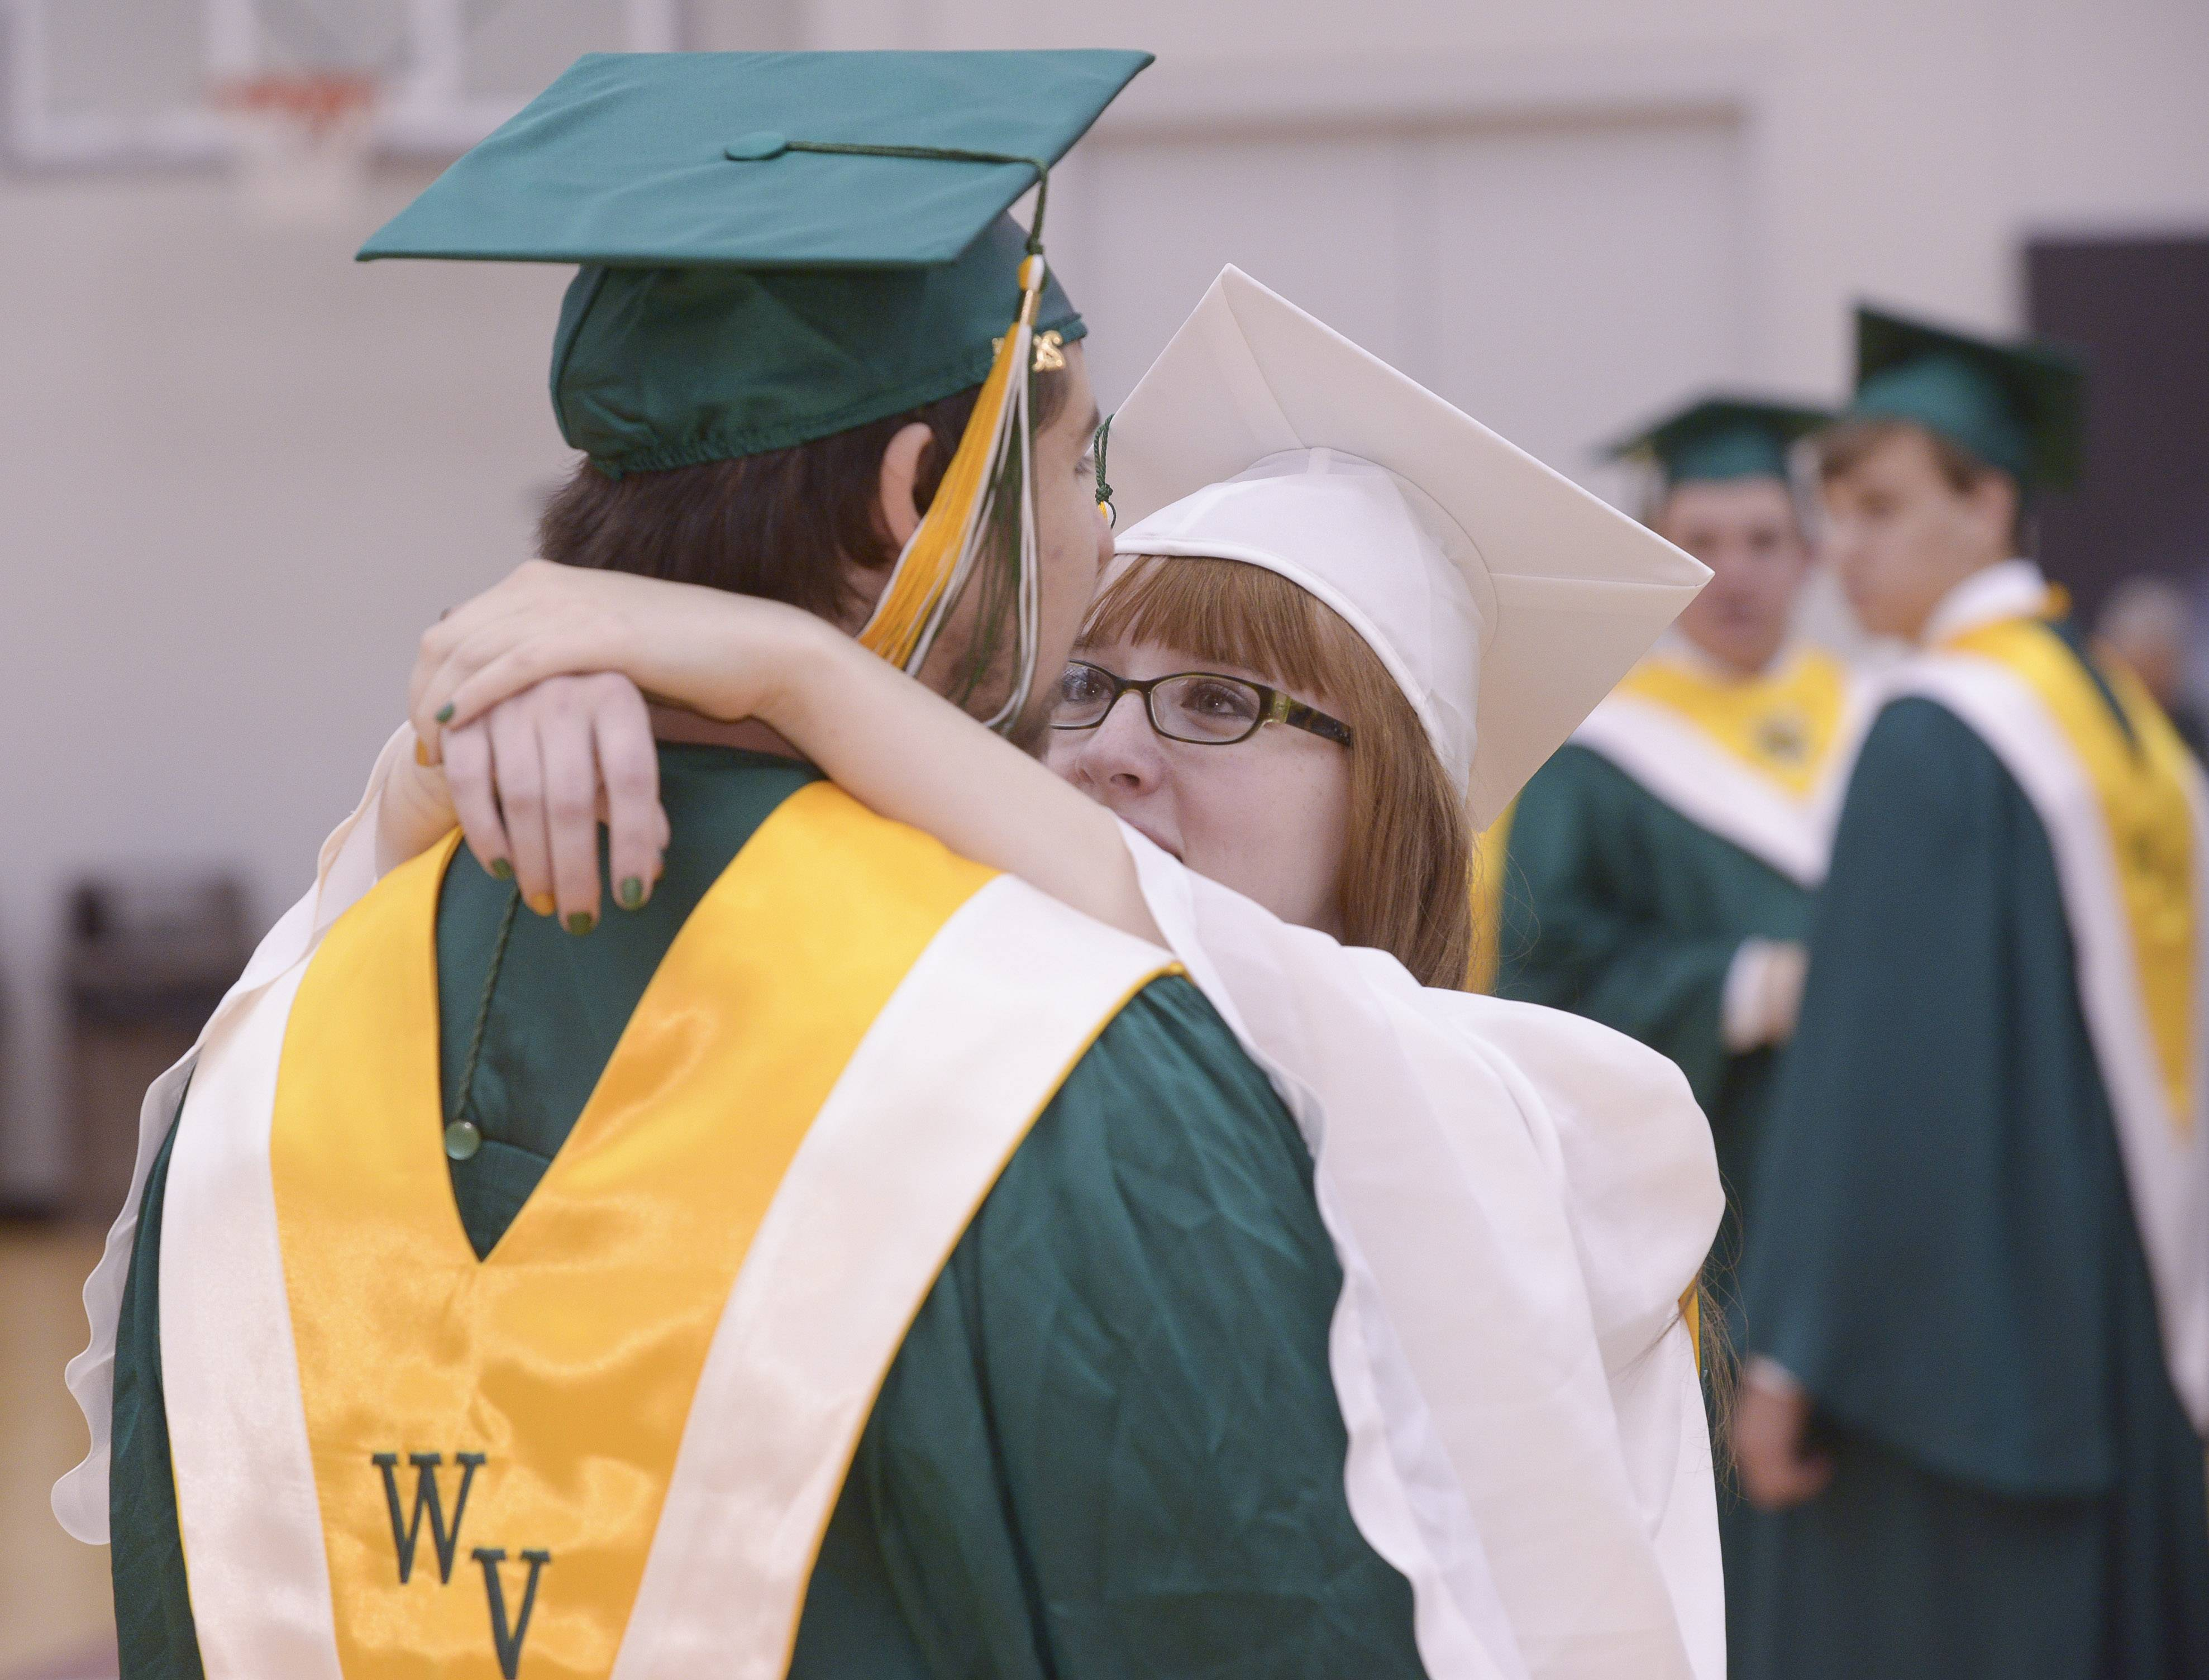 Daniel Medrano and Kami Baab share a moment before the start of the Waubonsie Valley High School graduation on Sunday, May 25 at NIU in DeKalb.